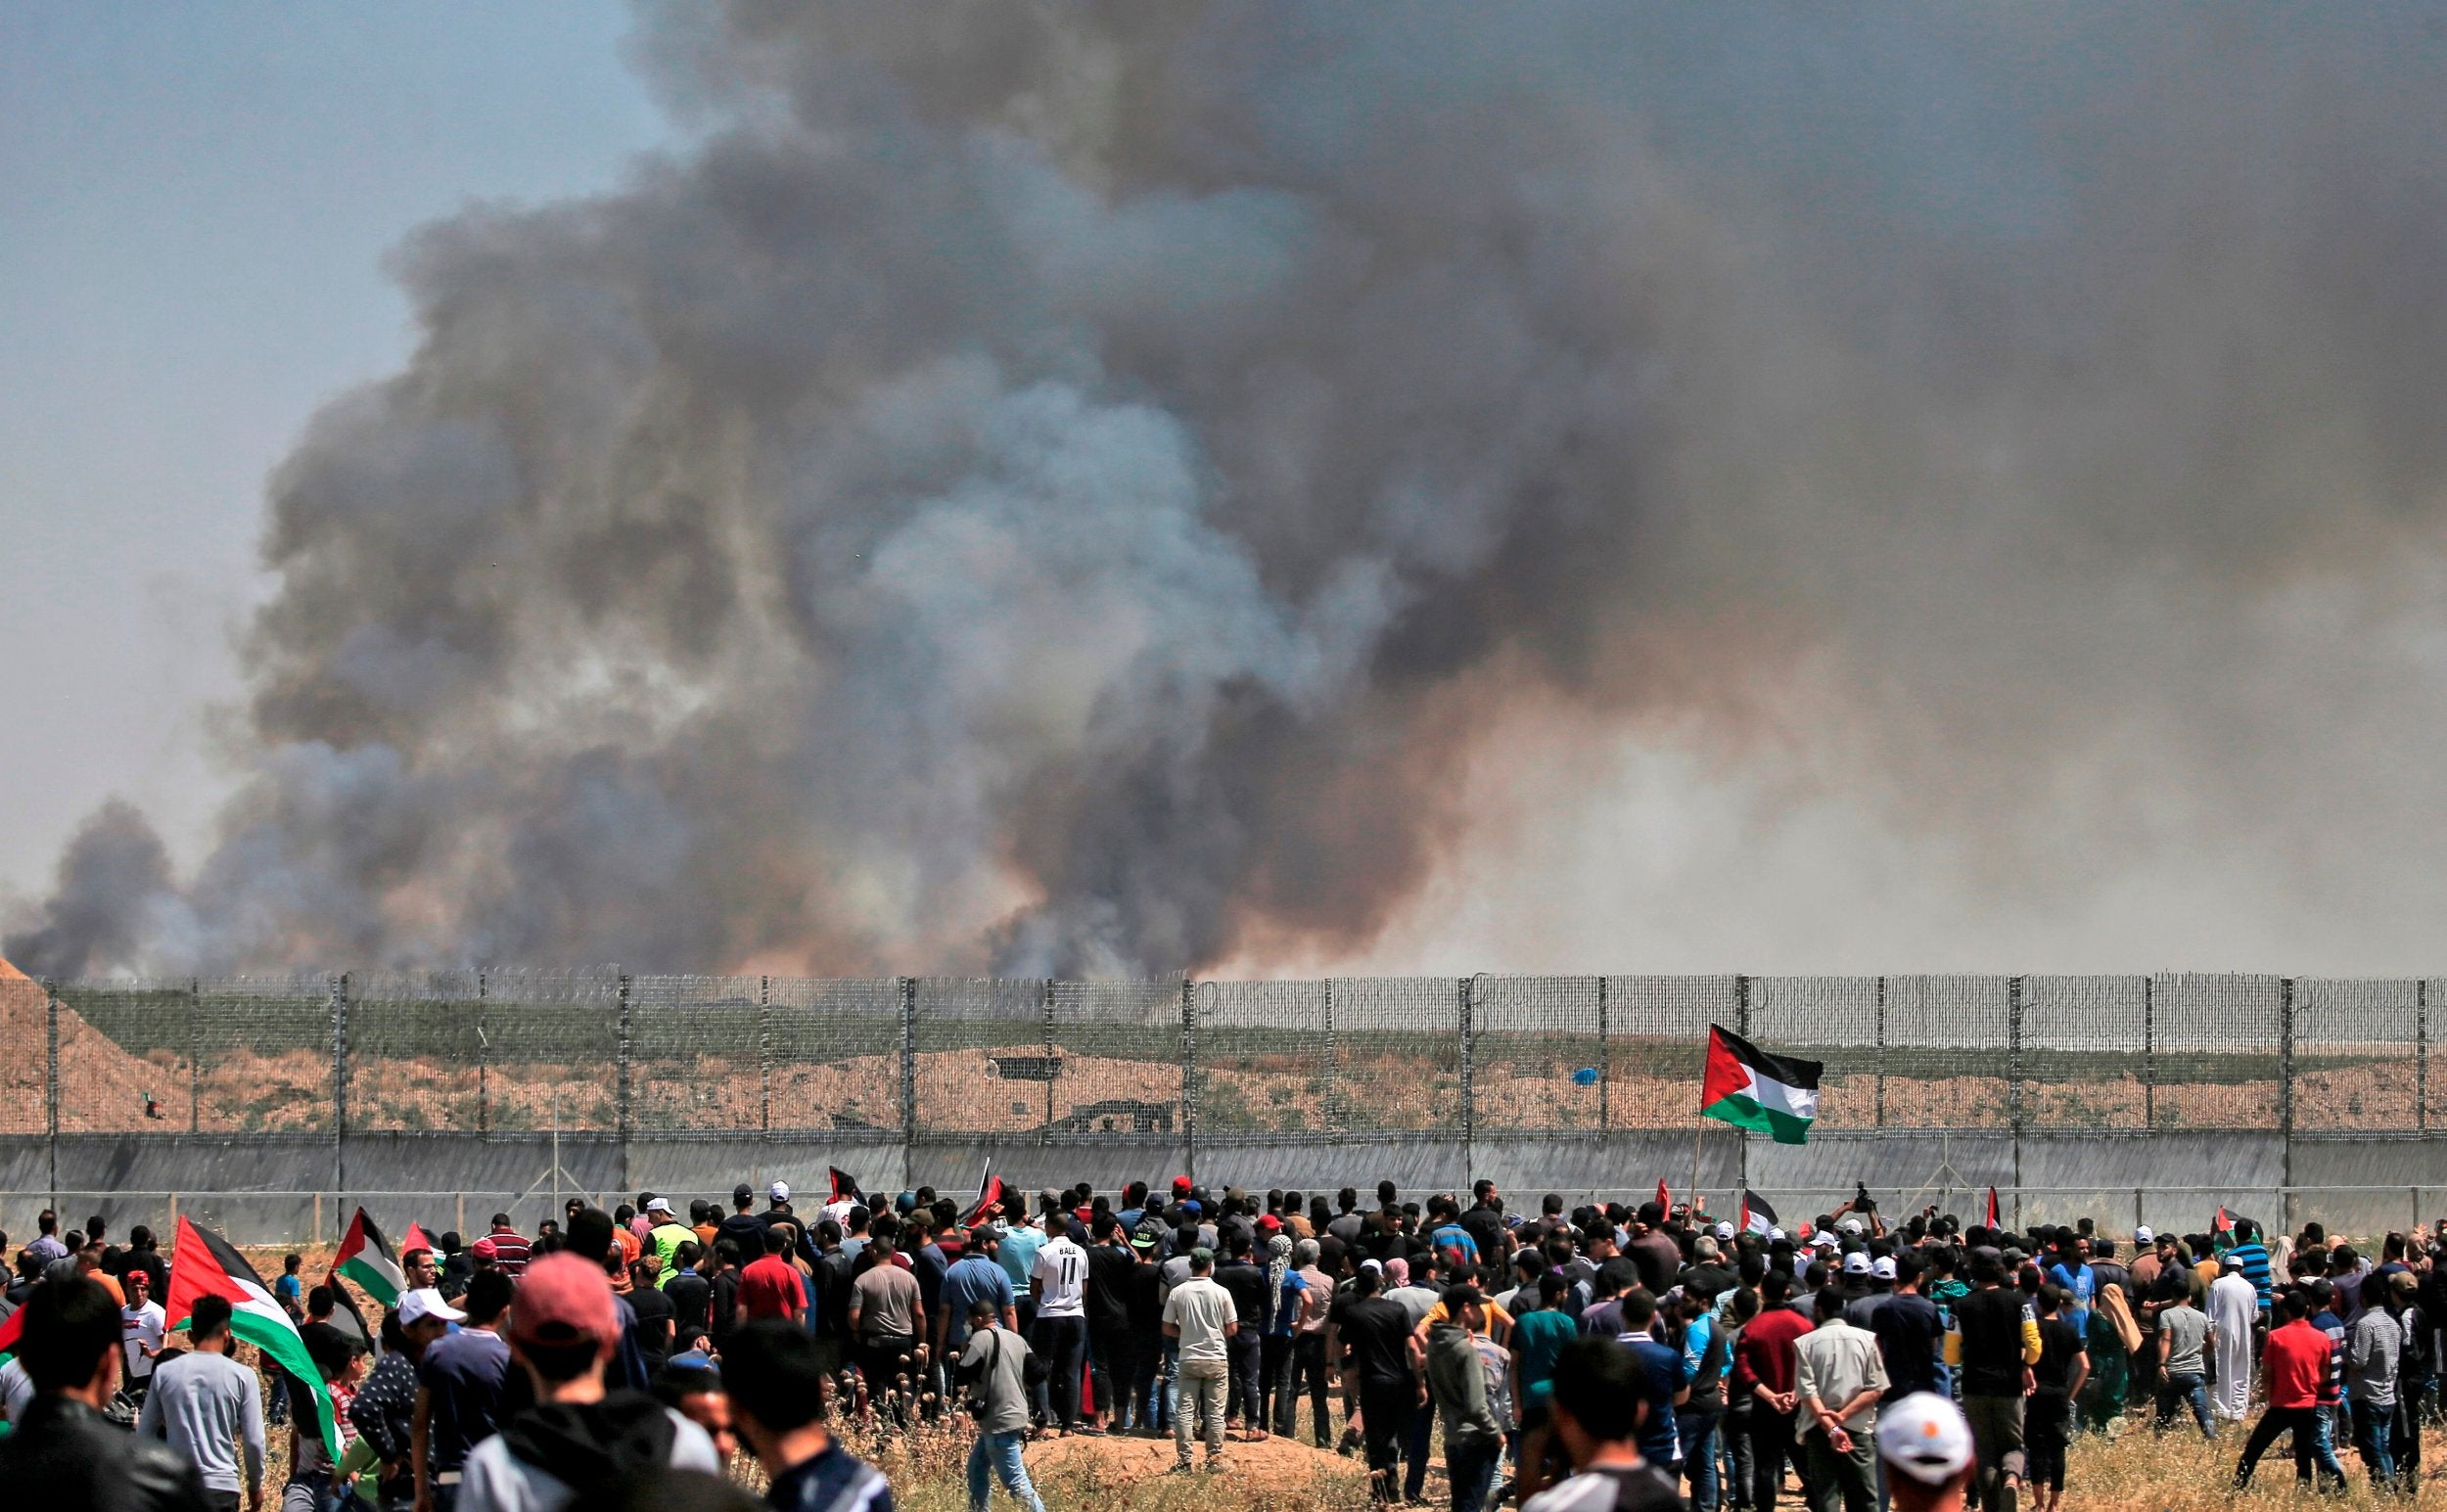 Gaza: Hamas urge restraint during 'Nakba' day protests as truce holds during Eurovision